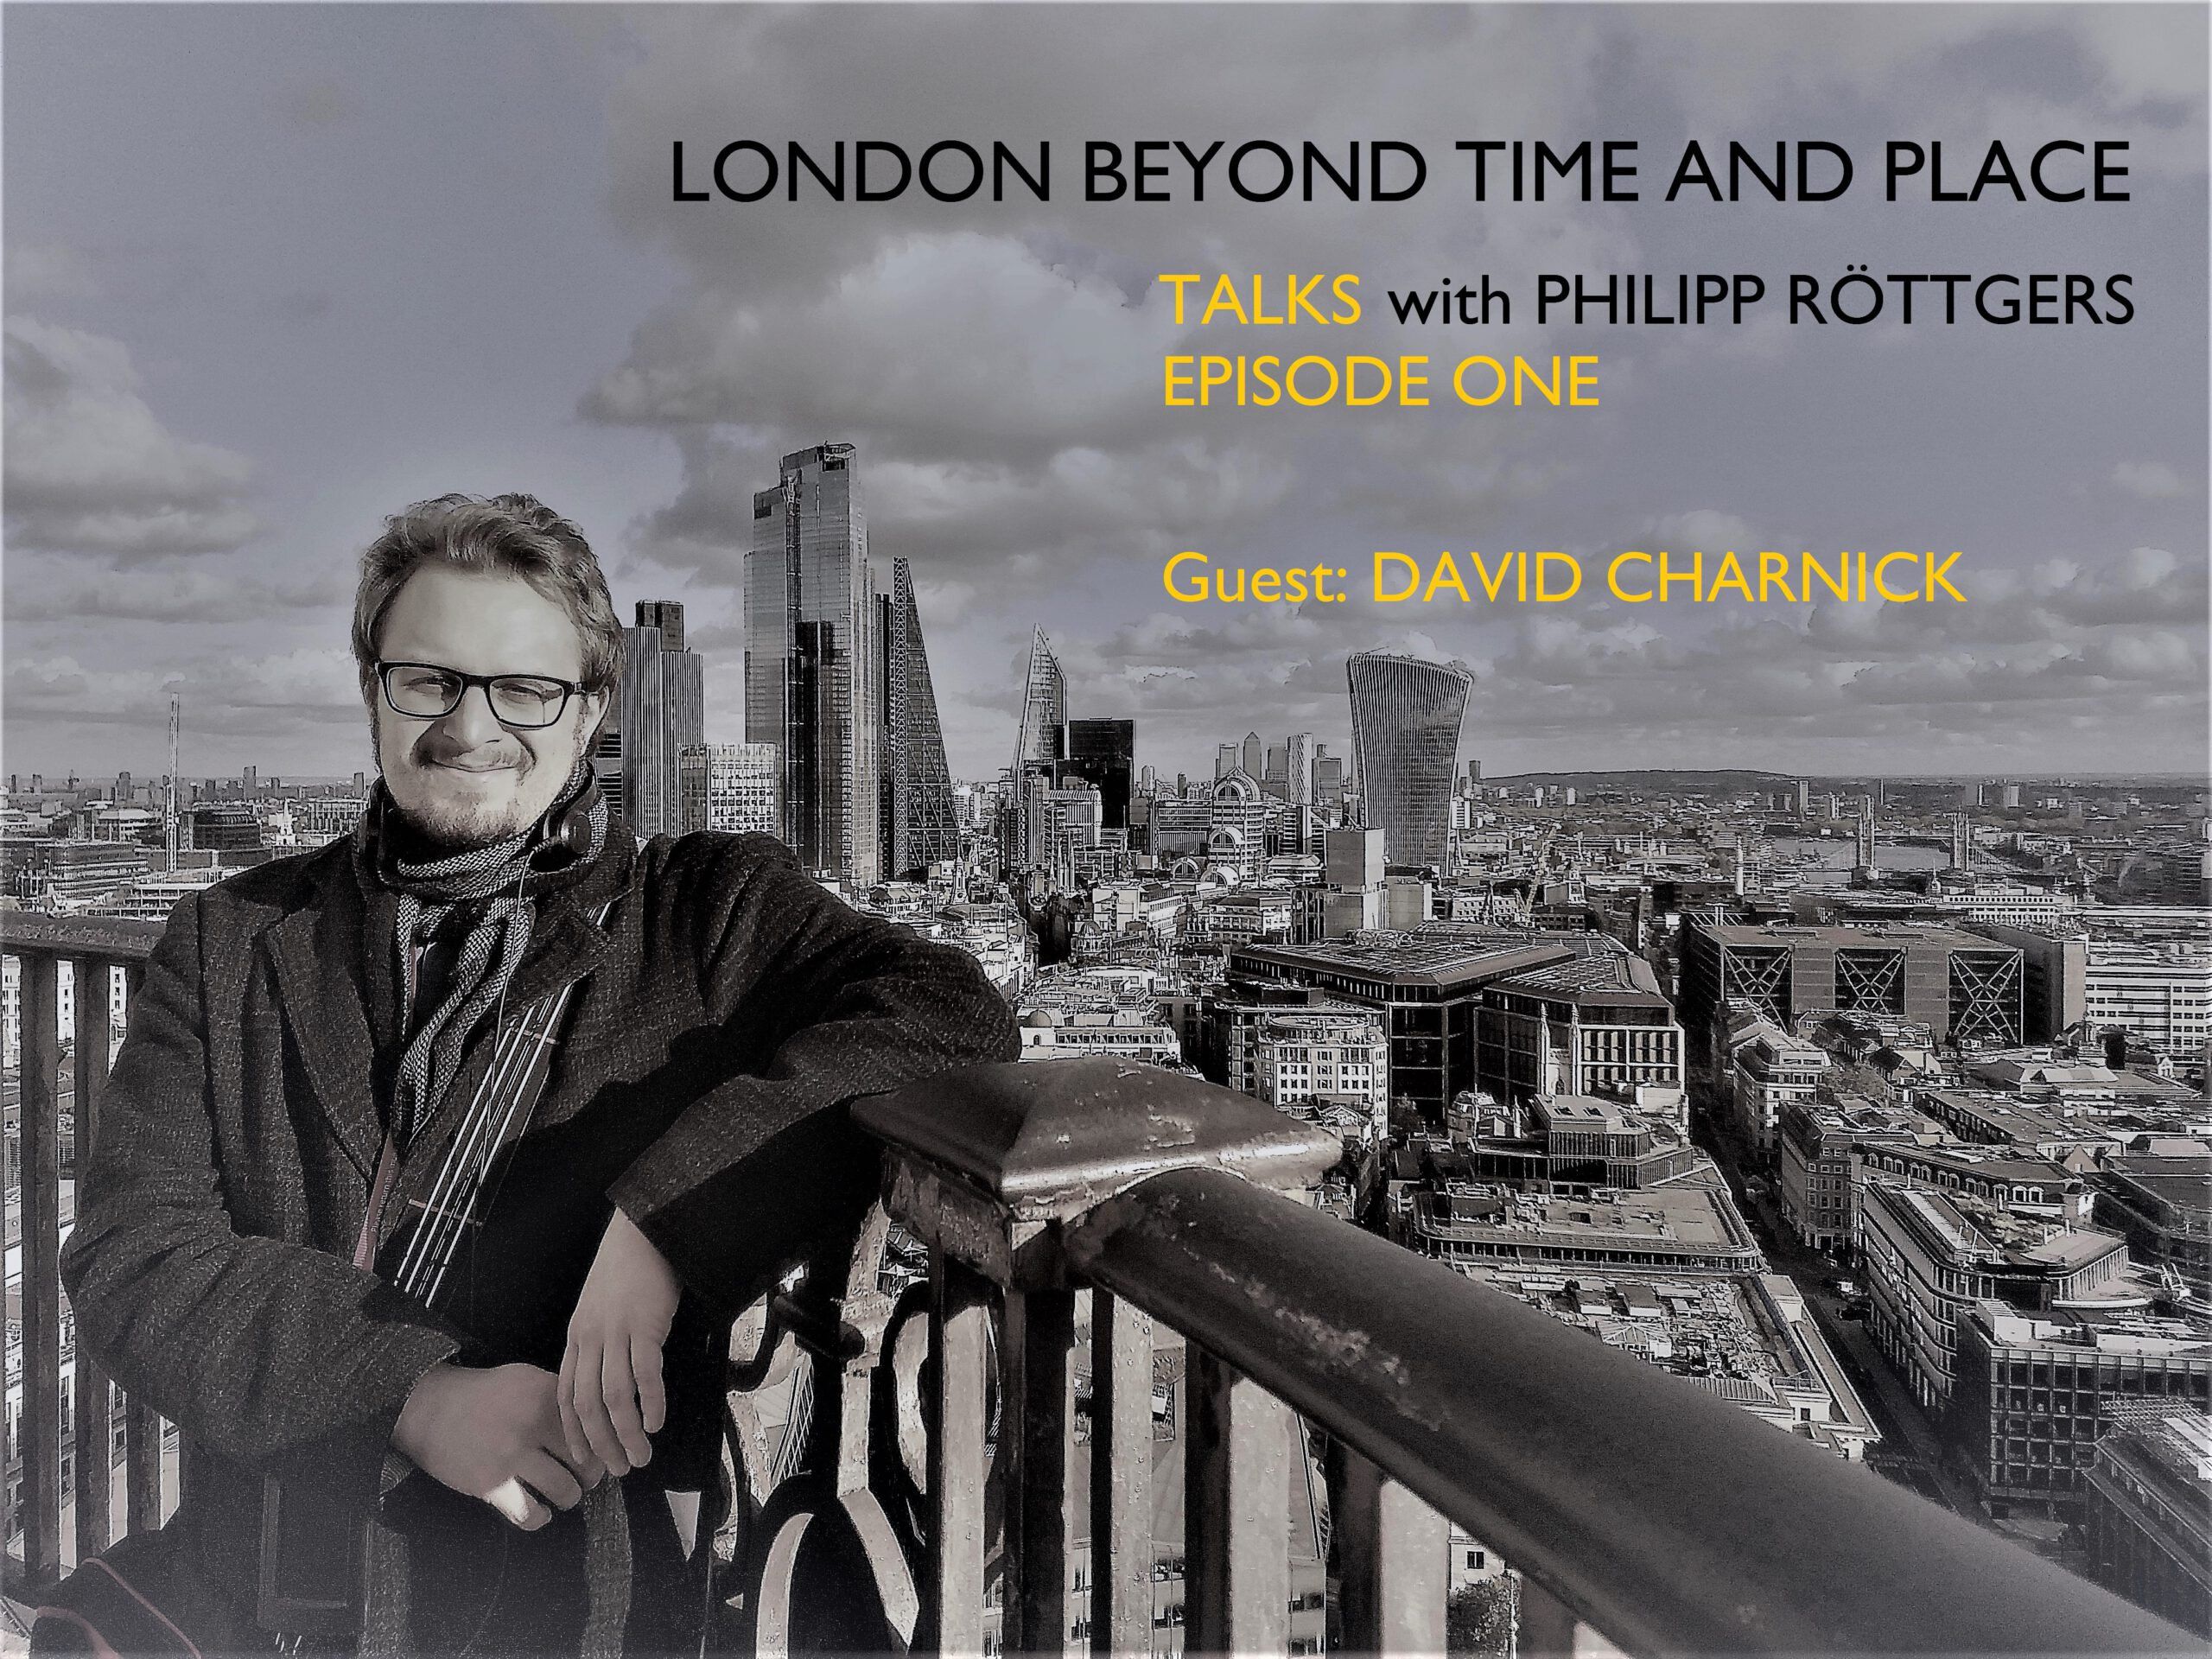 Talks beyond time and place - Episode 01: David Charnick